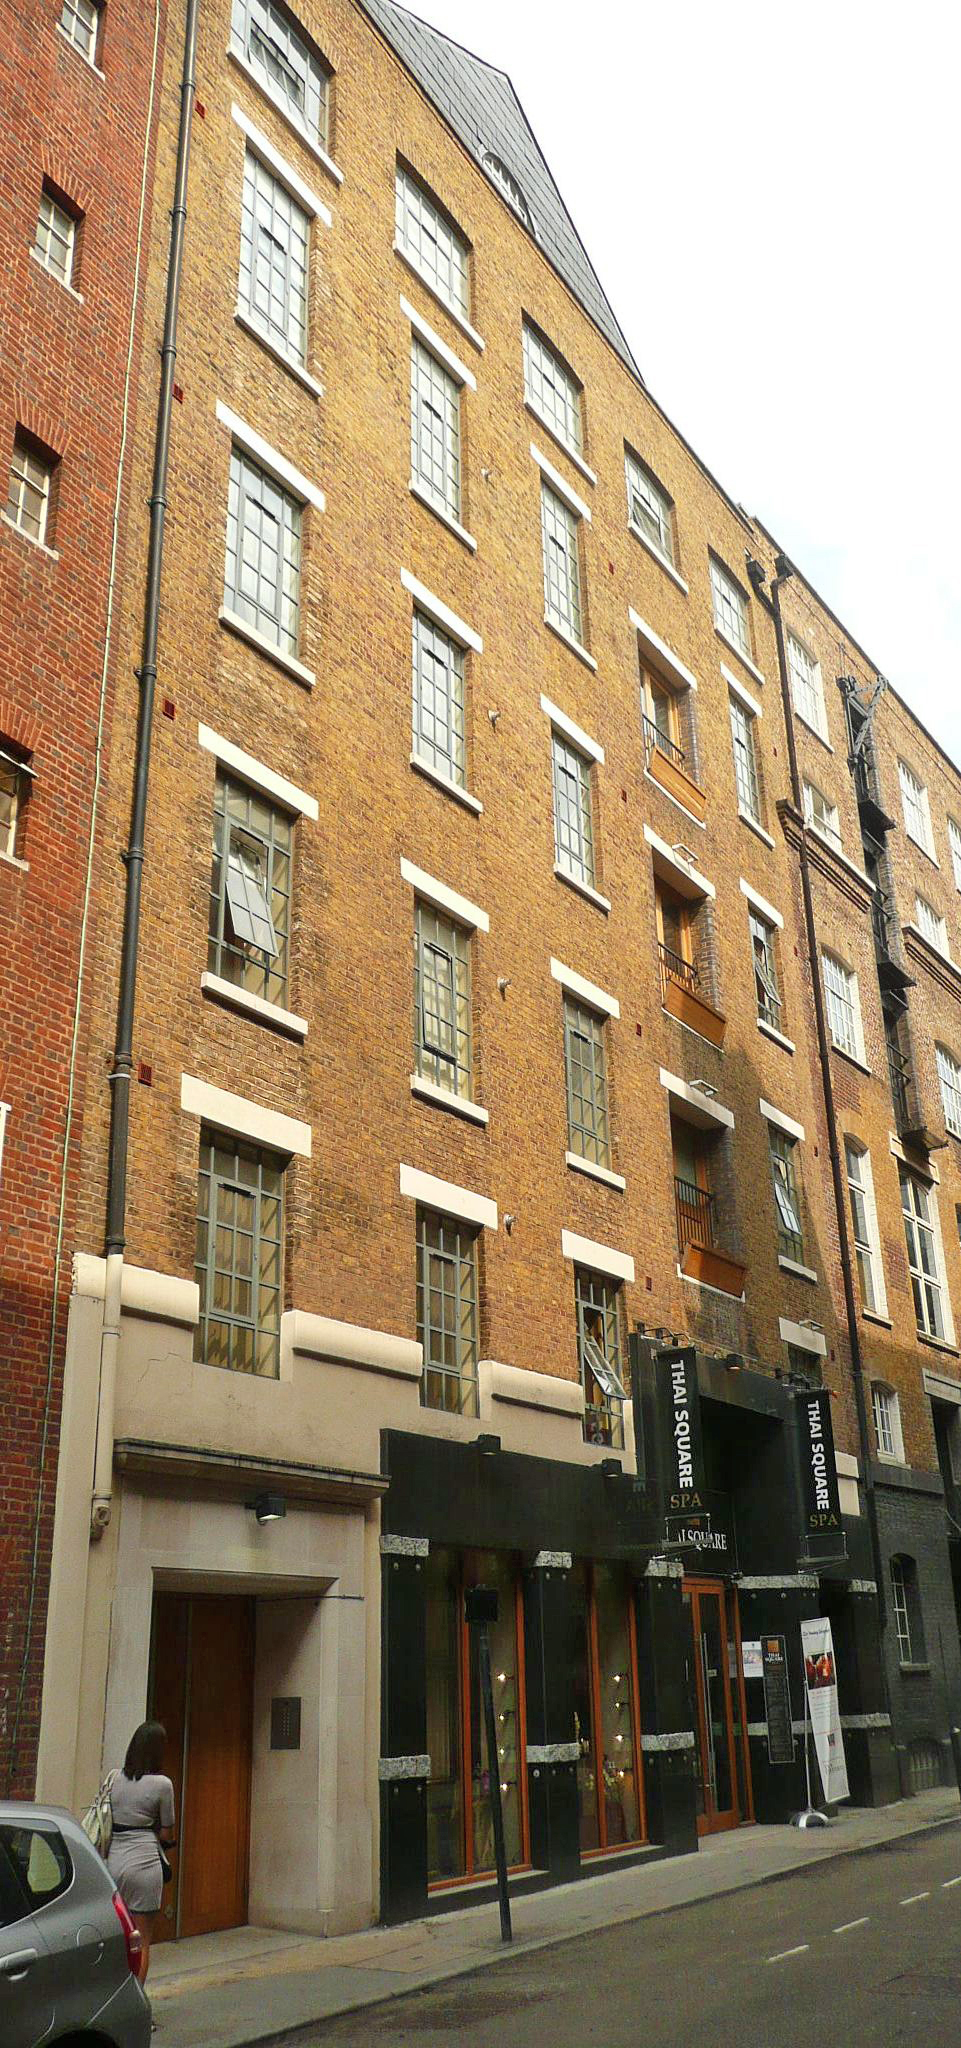 25 Shelton Street 18c ex-brewery demolition proposed by Allied London, restored after discussions between Trust Chairman and Mike Ingall CEO.